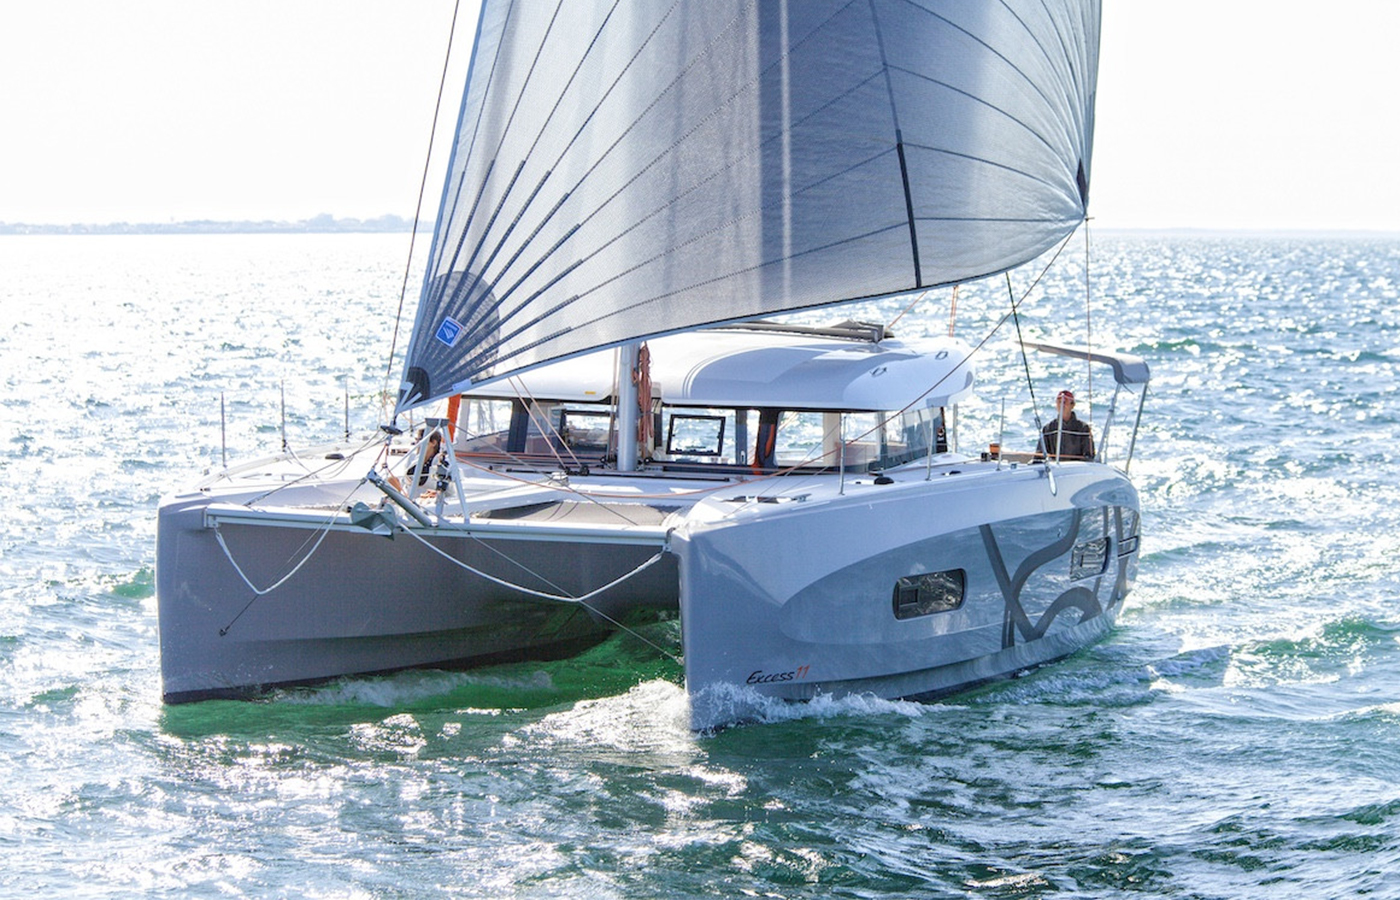 Top 6 Catamarans Under 70 Feet [New + Brokerage]